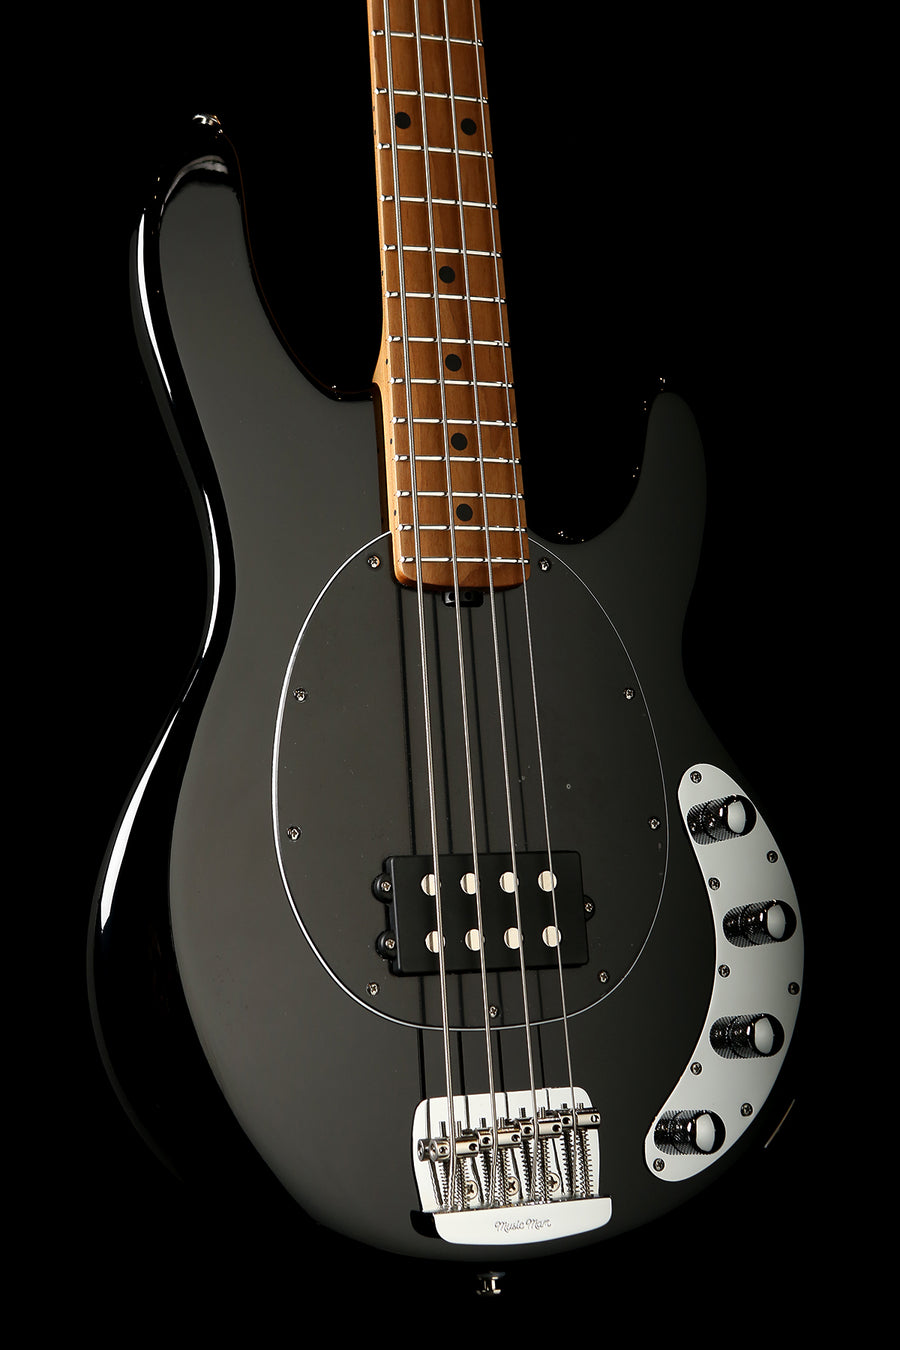 Ernie Ball Music Man Stingray Special 4 H Black Roasted Maple